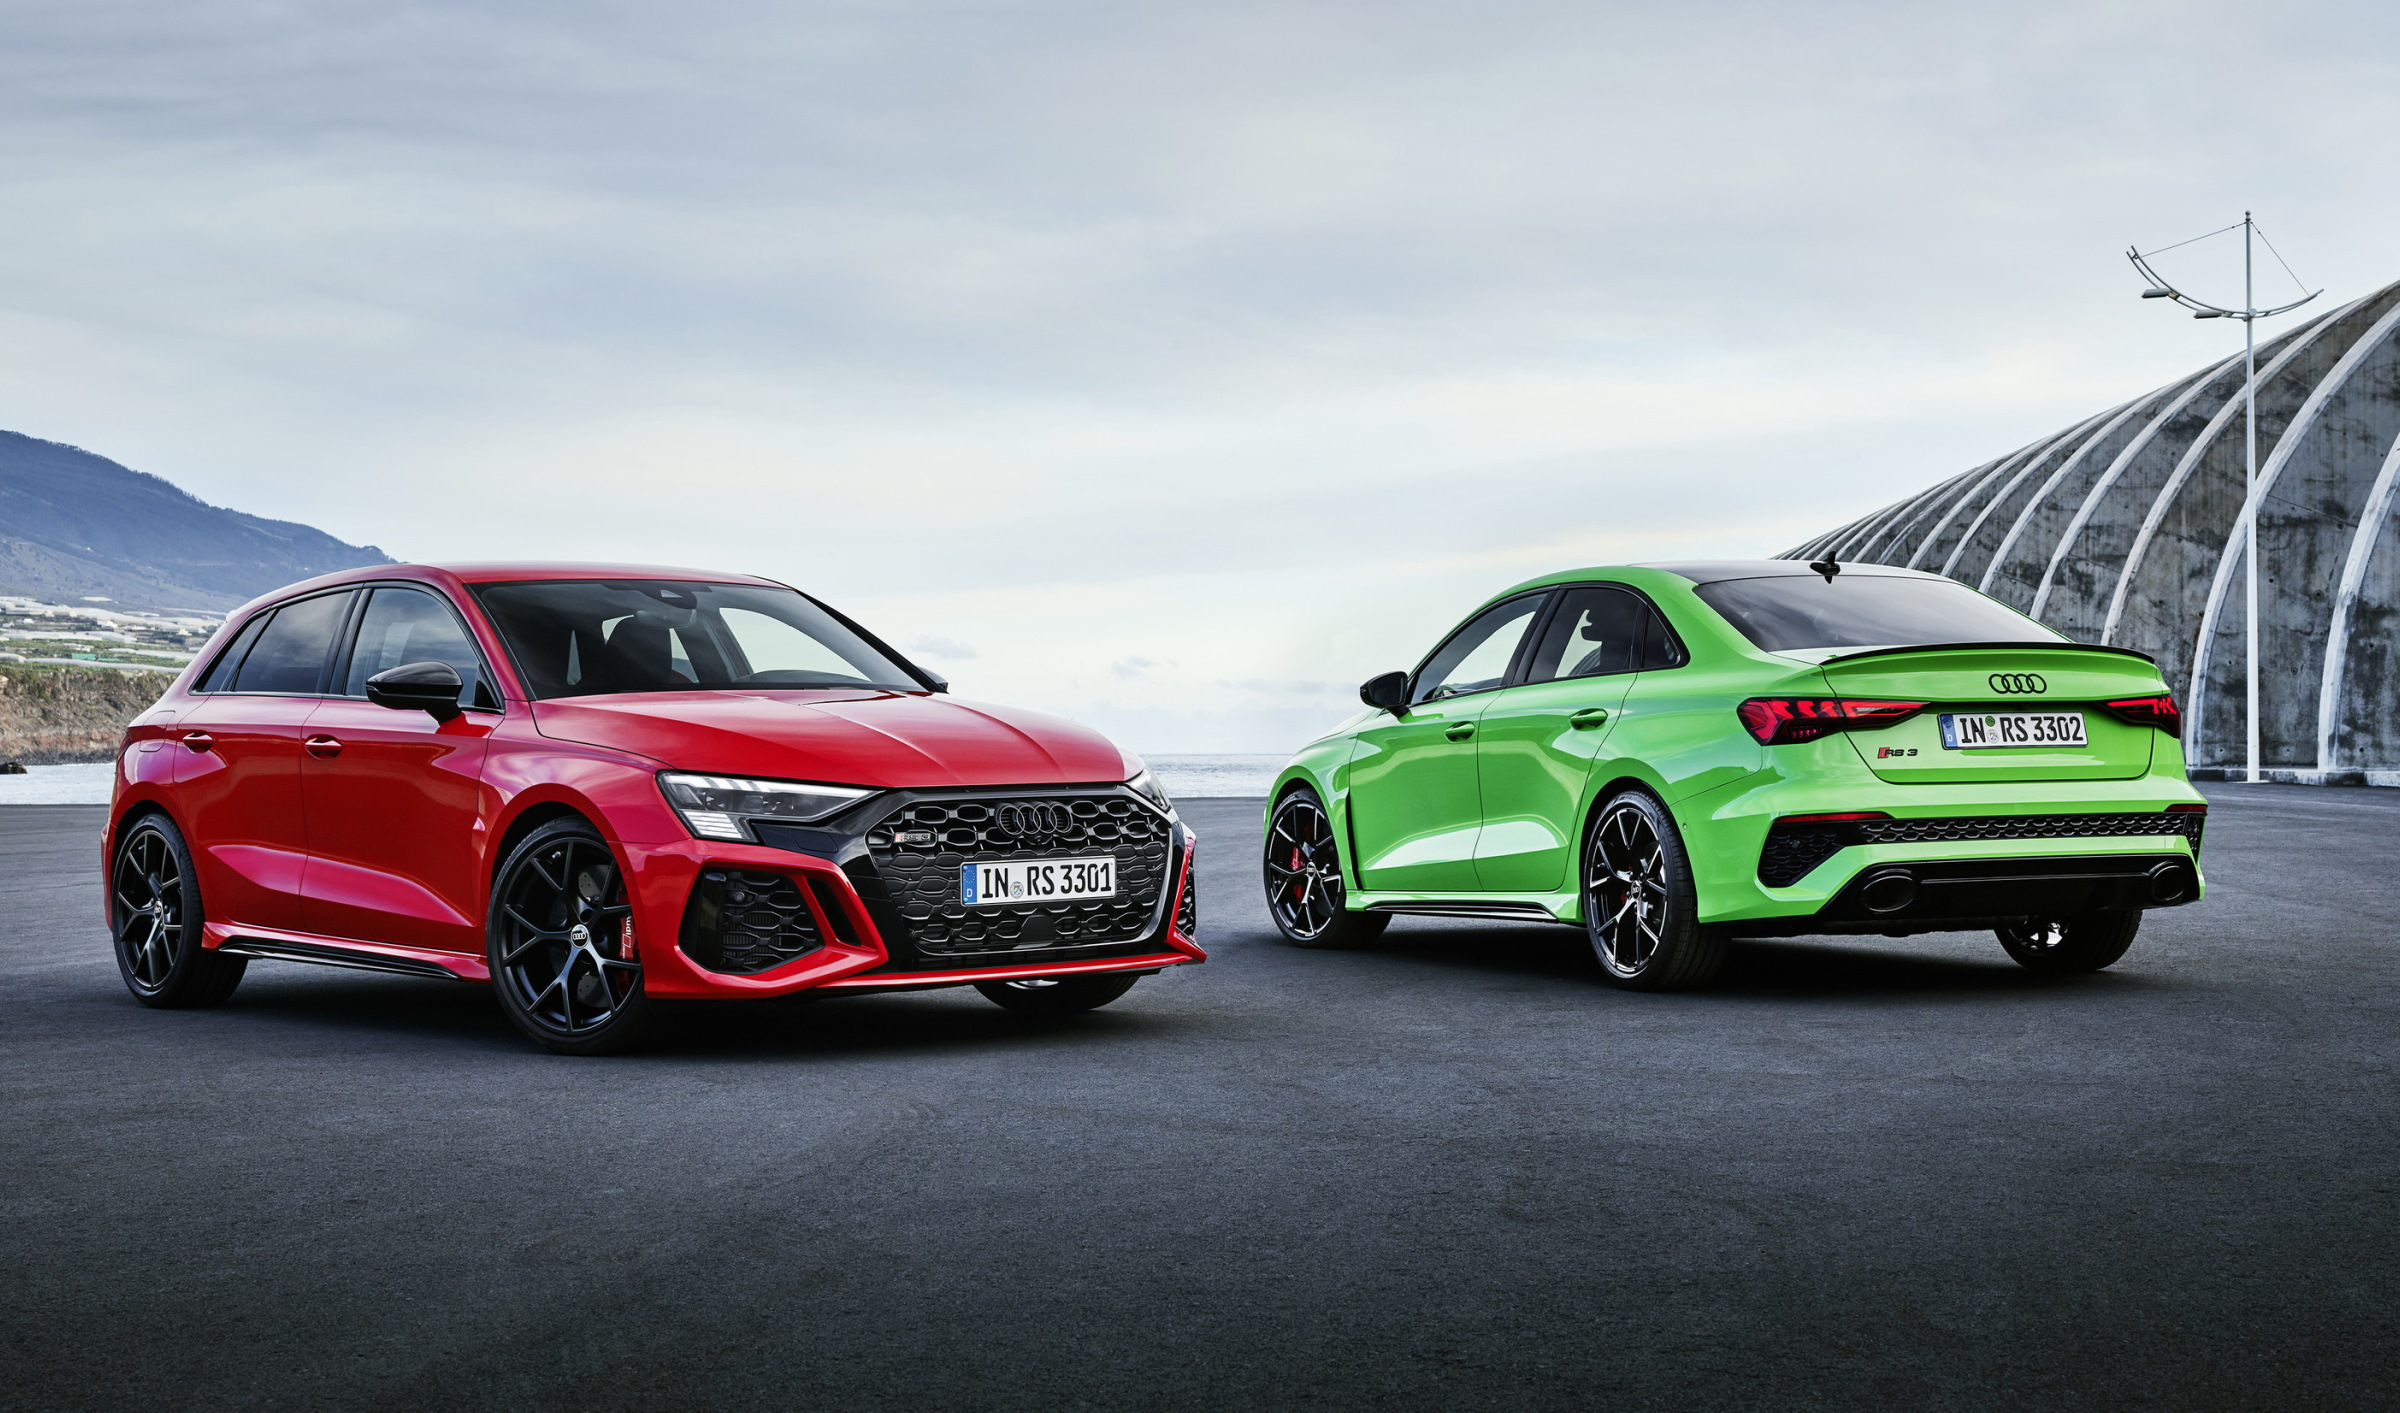 The Audi RS 3 Blends Performance Driving With Everyday Usability